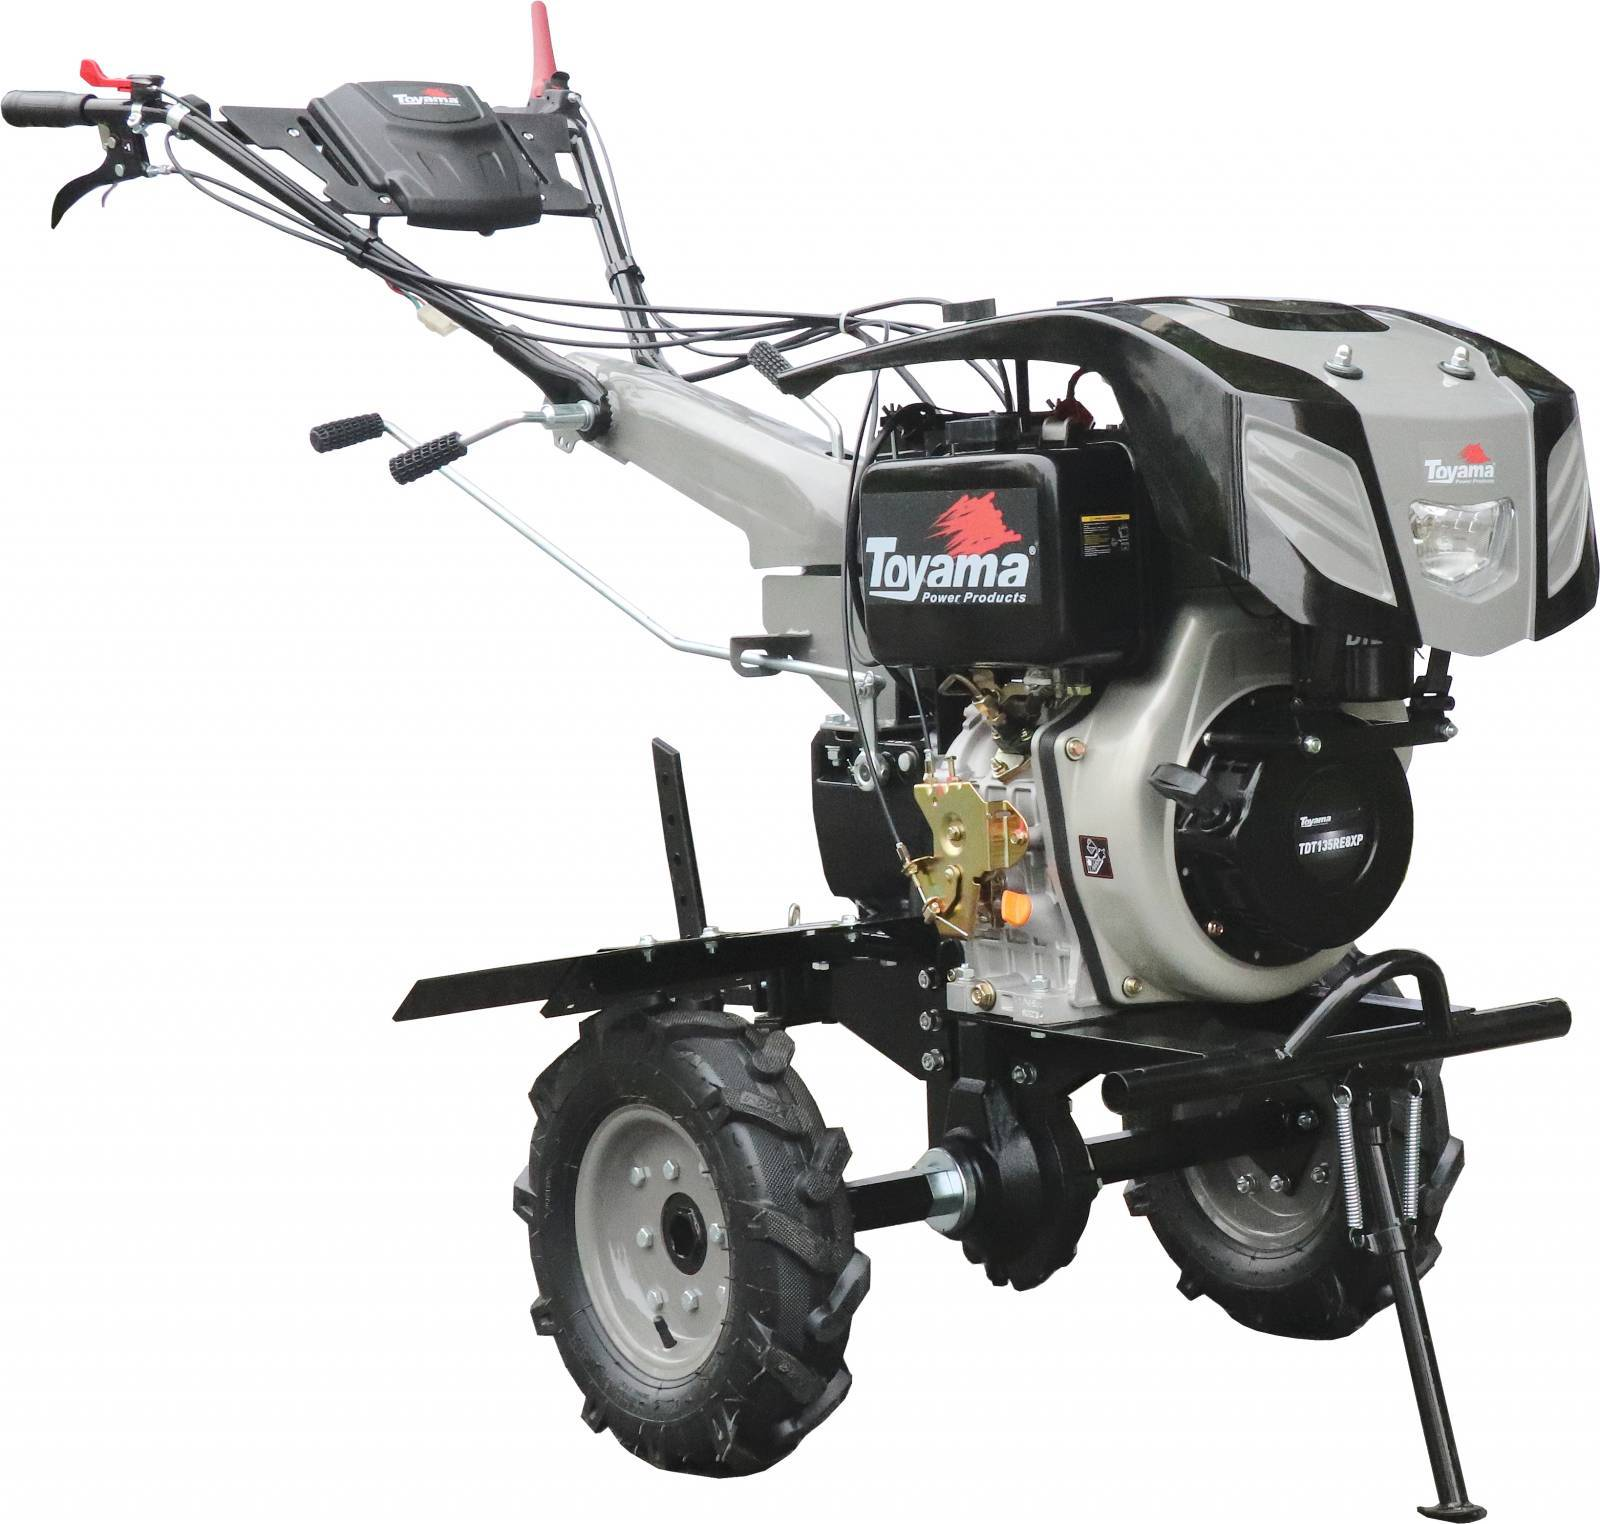 Motocutivador a Diesel TDT135RE8-XP - 11.0HP - 1,35m - Aro 0 - BSS Maquinas